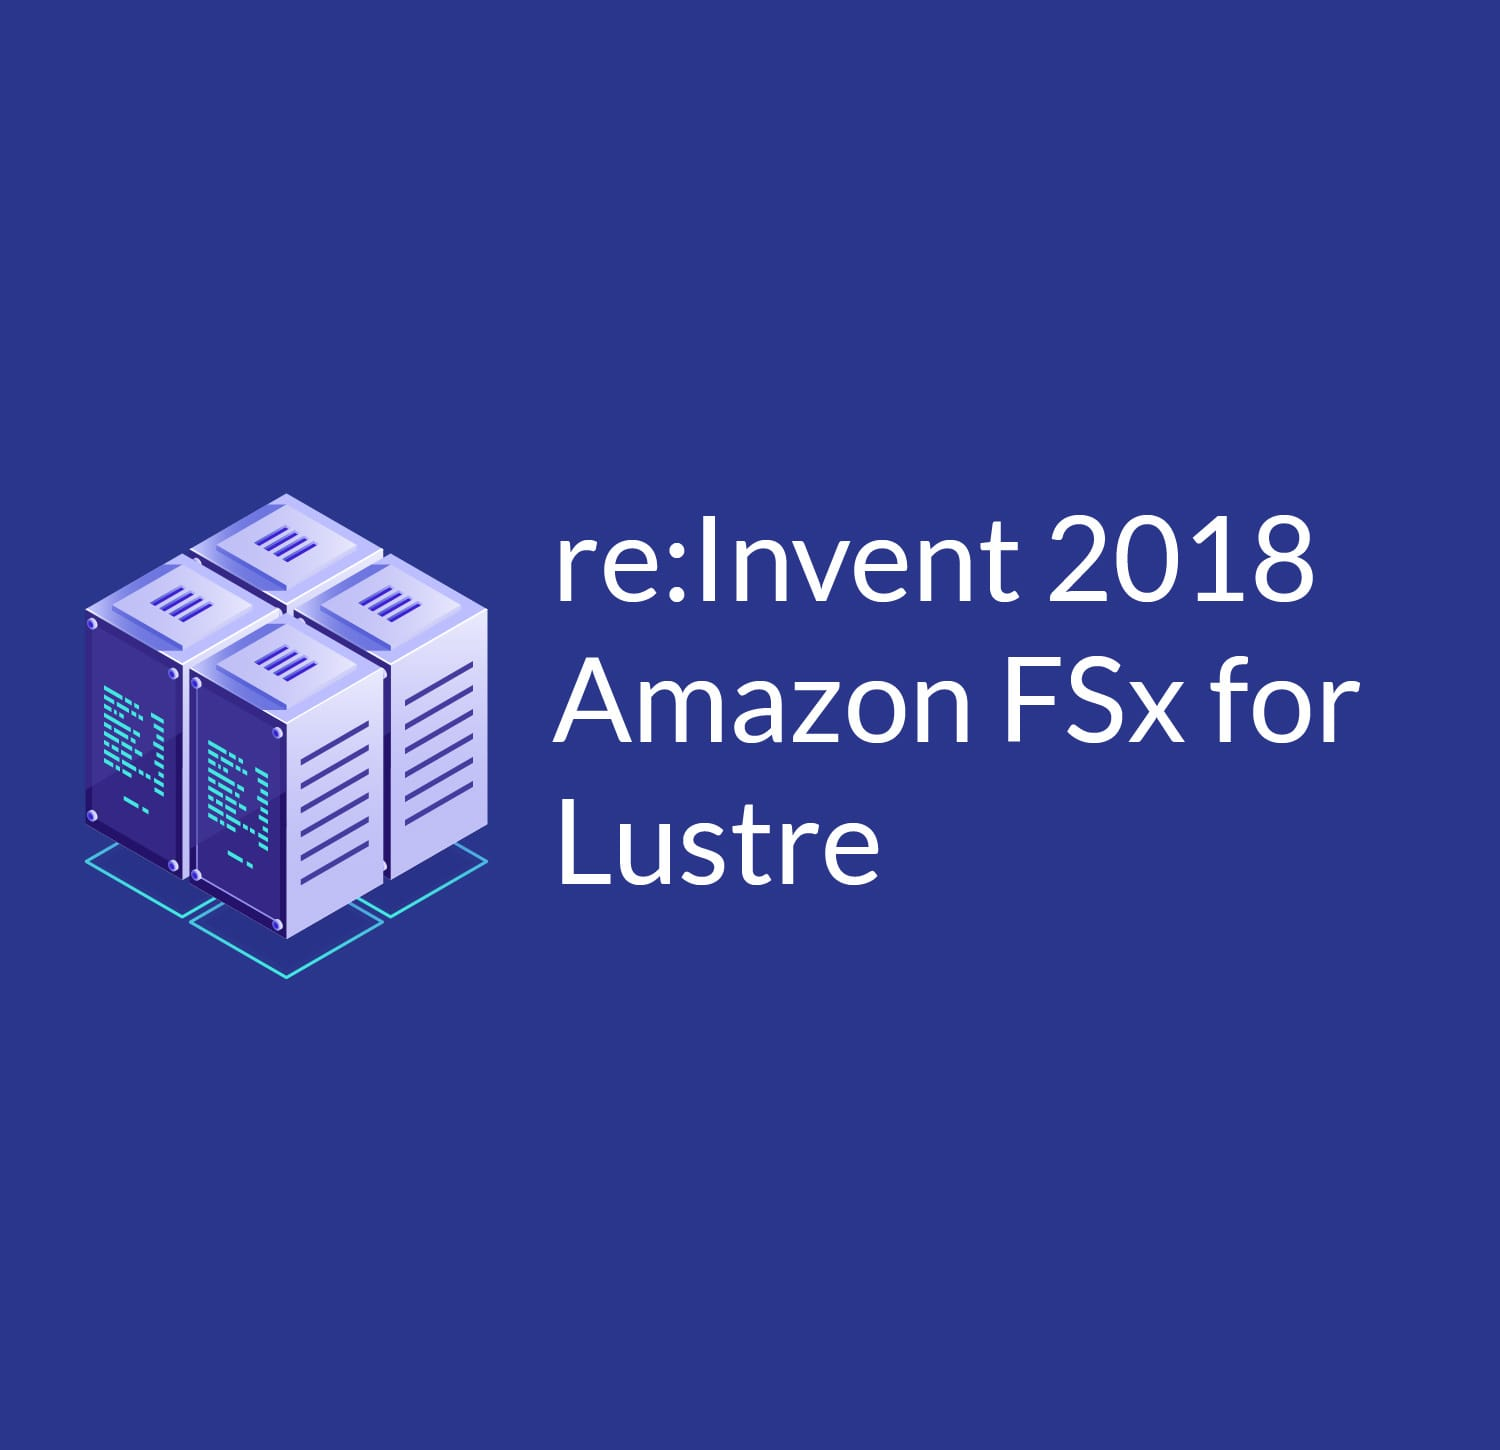 Amazon FSx for Lustre Makes High Performance Computing More